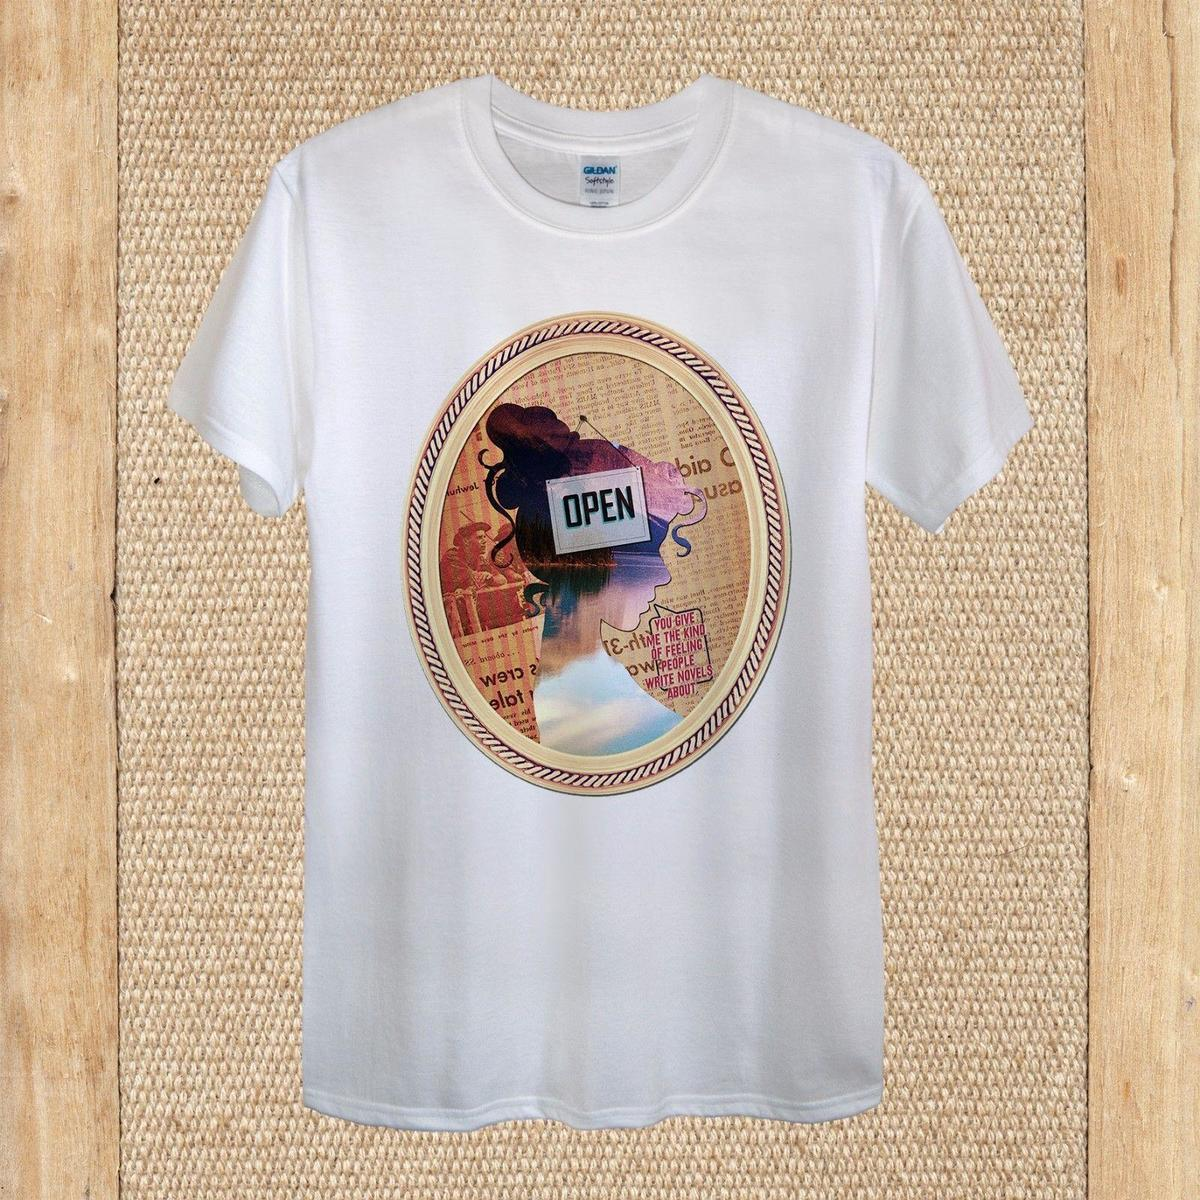 81b92b6c She Speaks Vintage Art Creative T Shirt Design High Quality Unisex Women  Fitted Best Tshirts Cool T Shirts Online From Jie40, $14.67| DHgate.Com